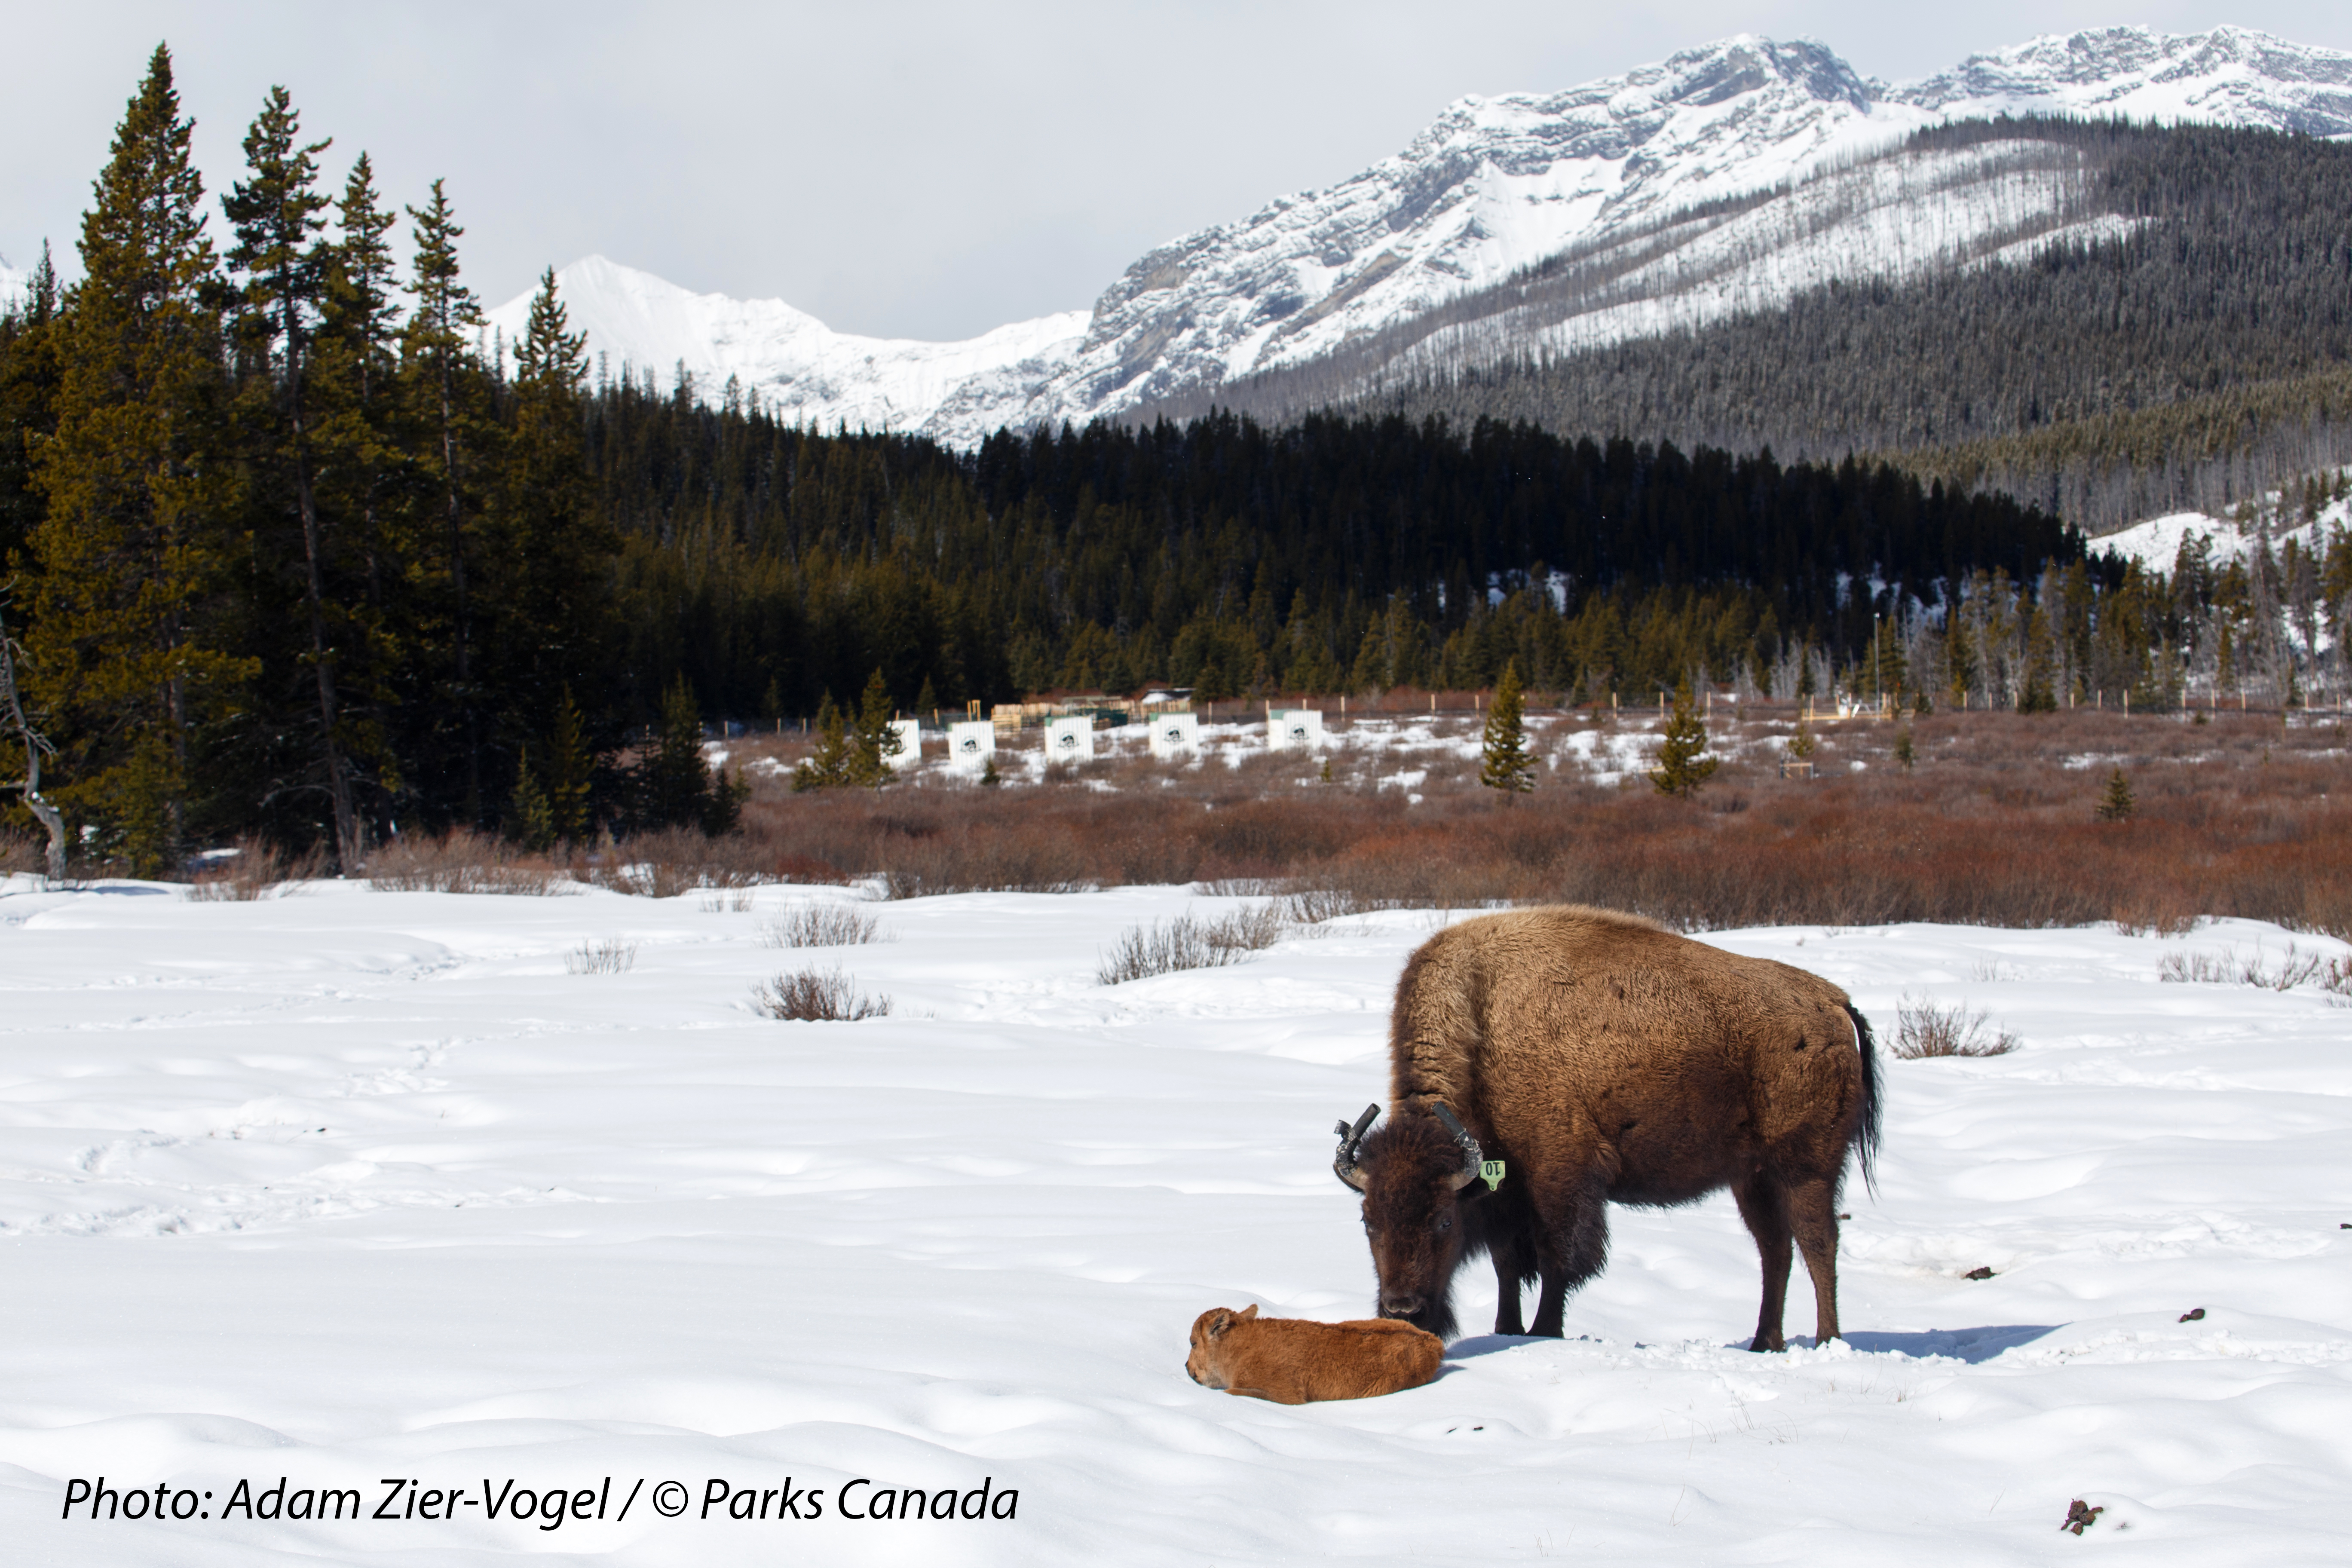 First bison calves born in Banff National Park in over 140 years